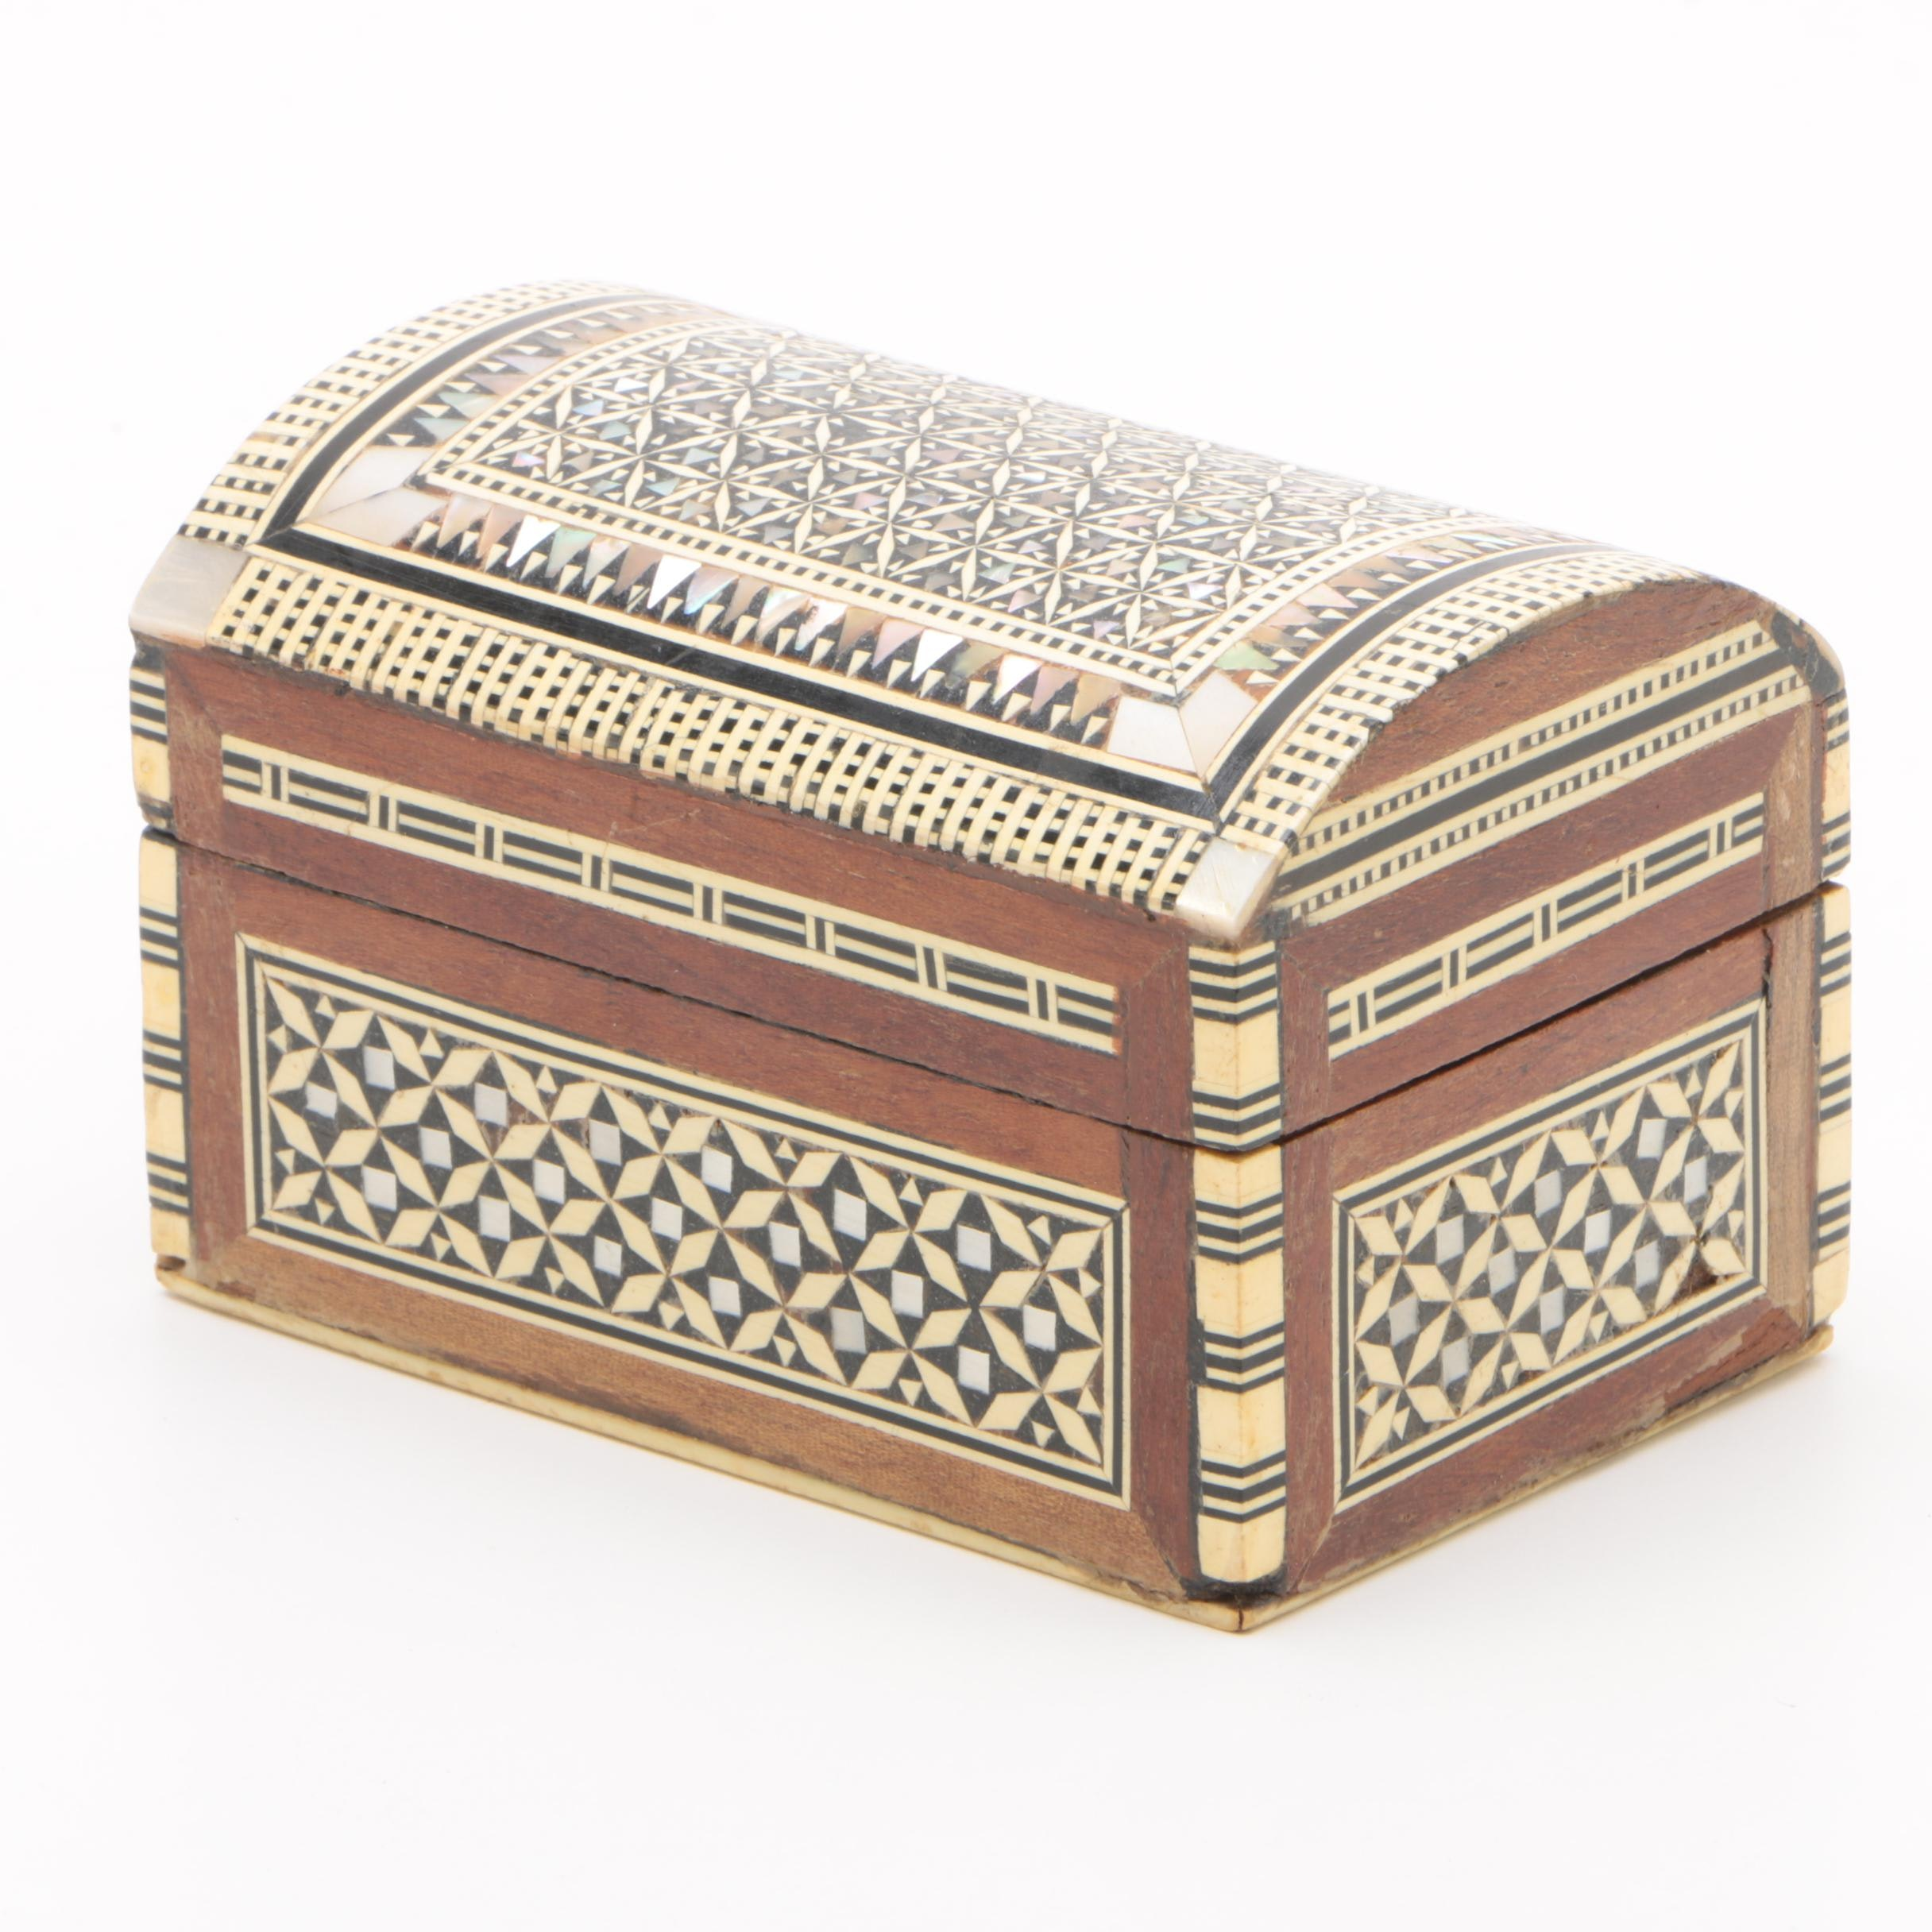 Moroccan Inspired Wood Box Inlaid with Mother of Pearl, Abalone and Bone